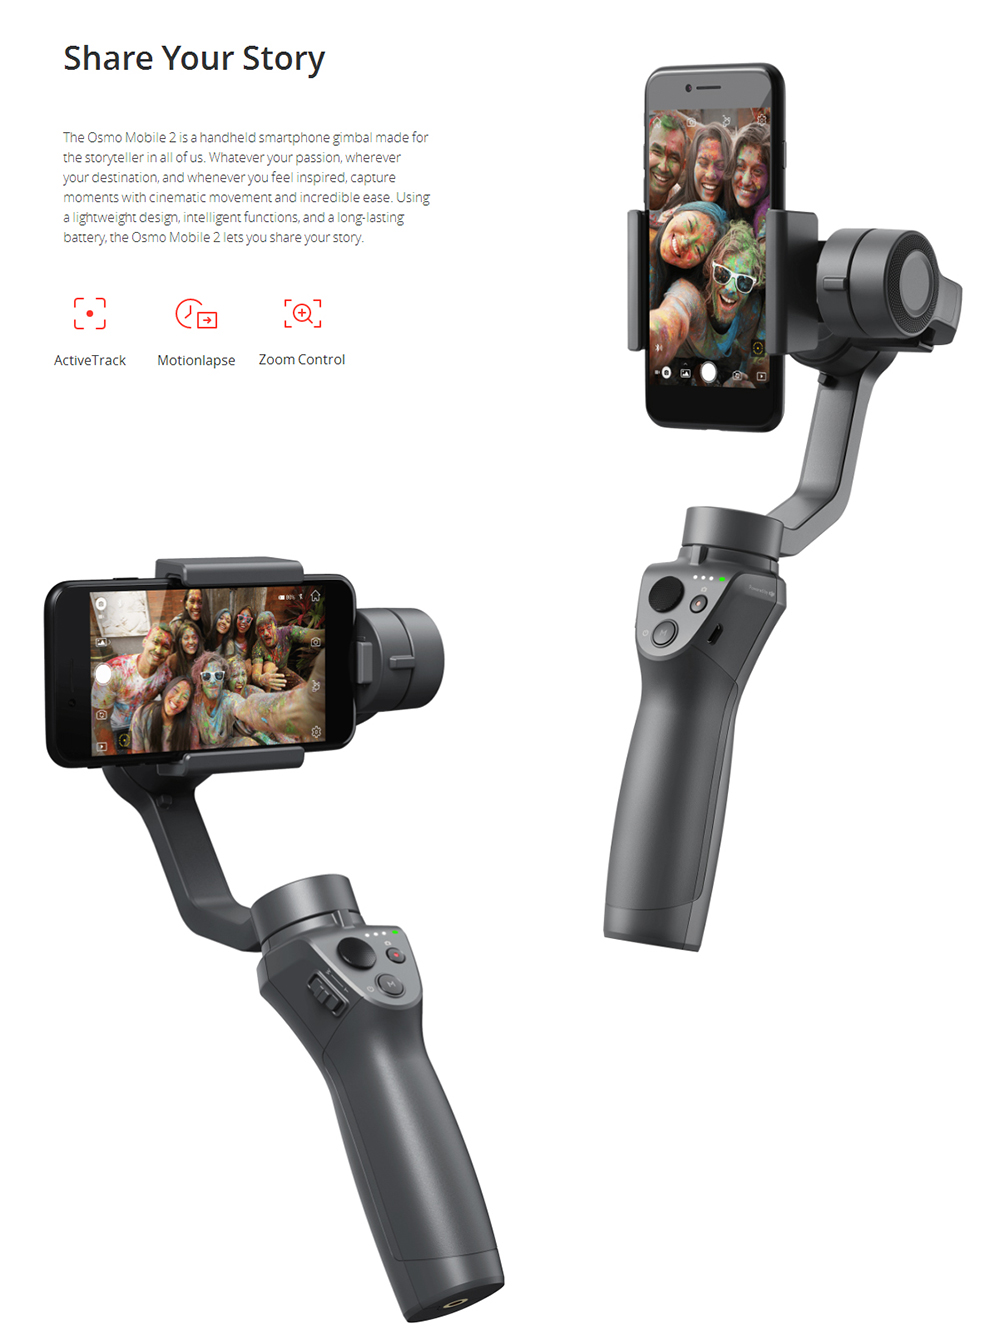 DJI OSMO Mobile 2 Handheld Gimbal Stabilizer Active Track Motionlapse Zoom Control for Smartphone- Black